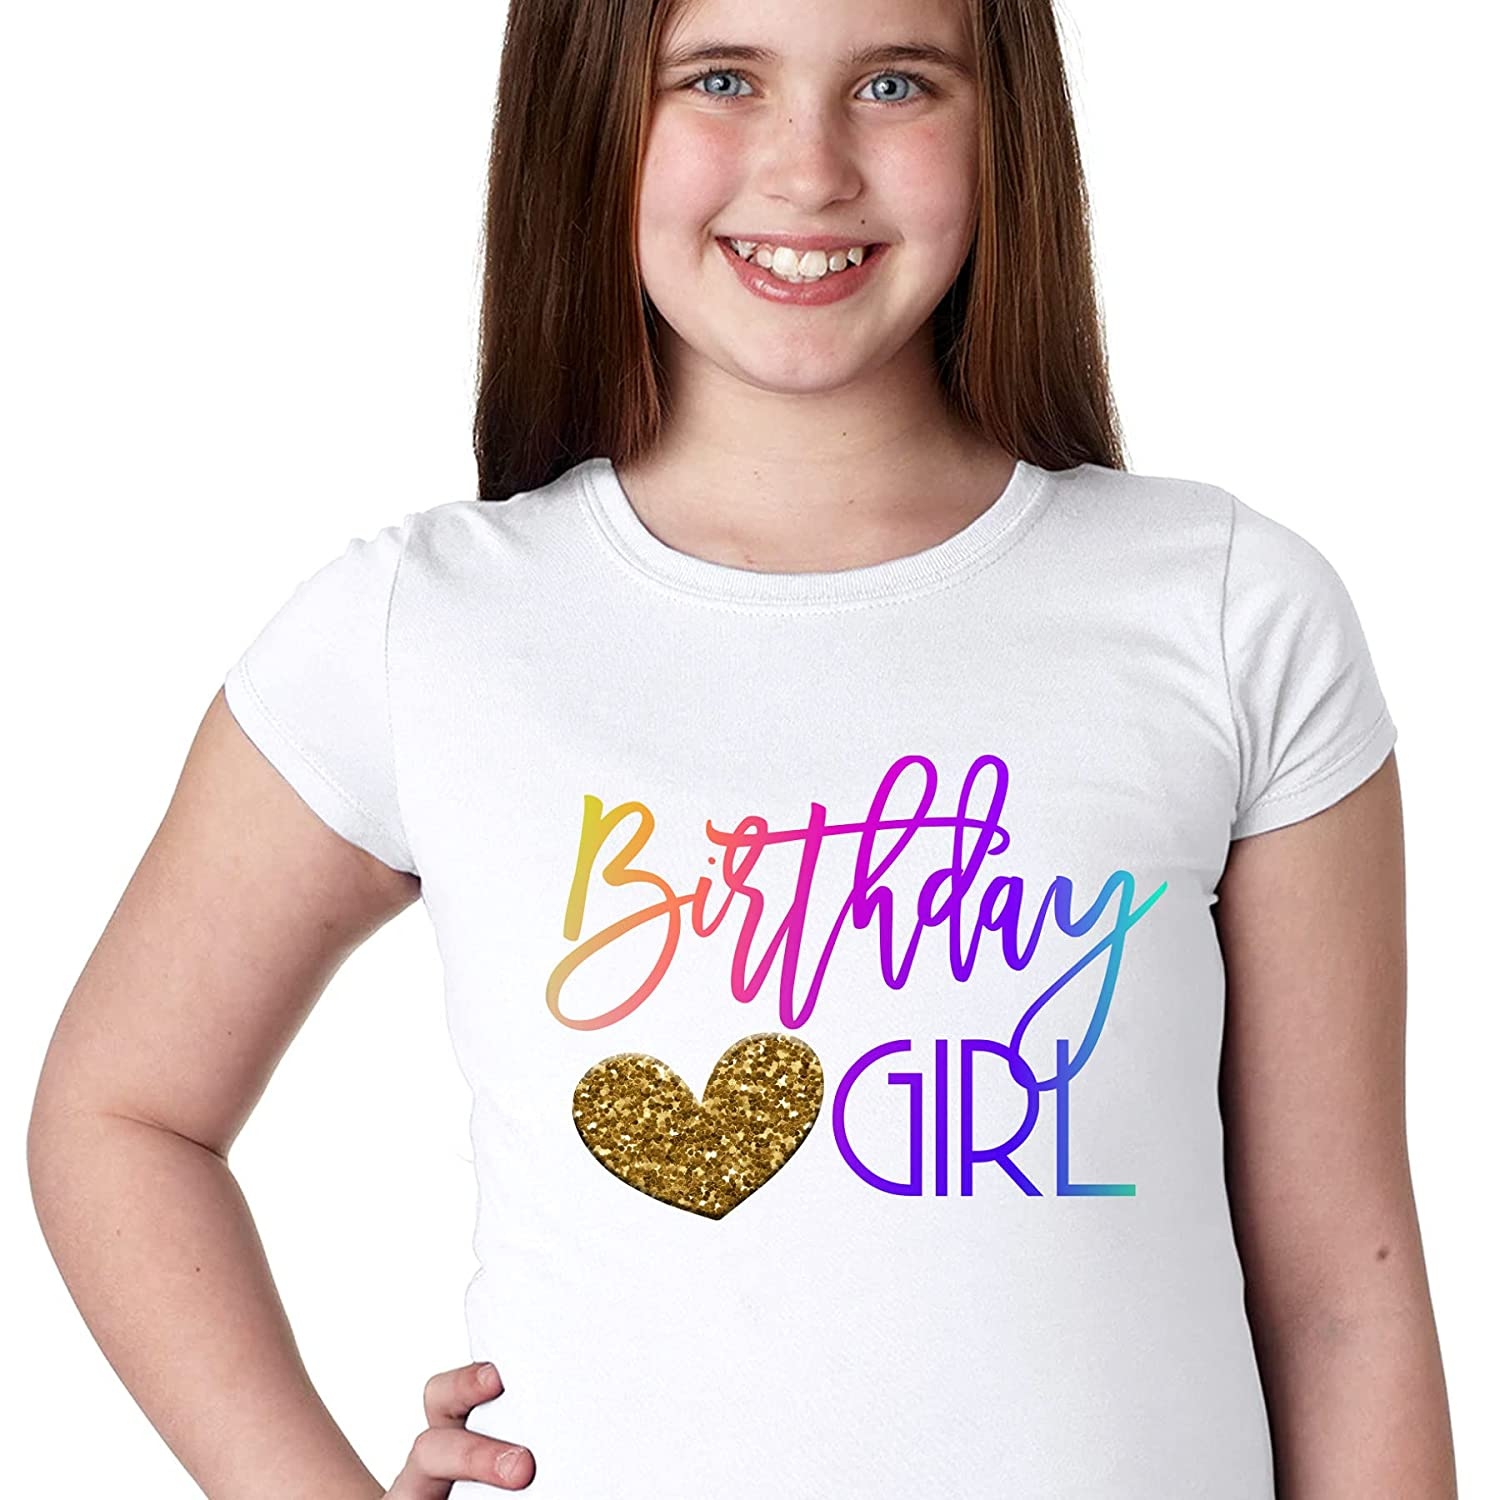 Birthday Attention brand Manufacturer regenerated product Girl Tshirt Its Gift My for